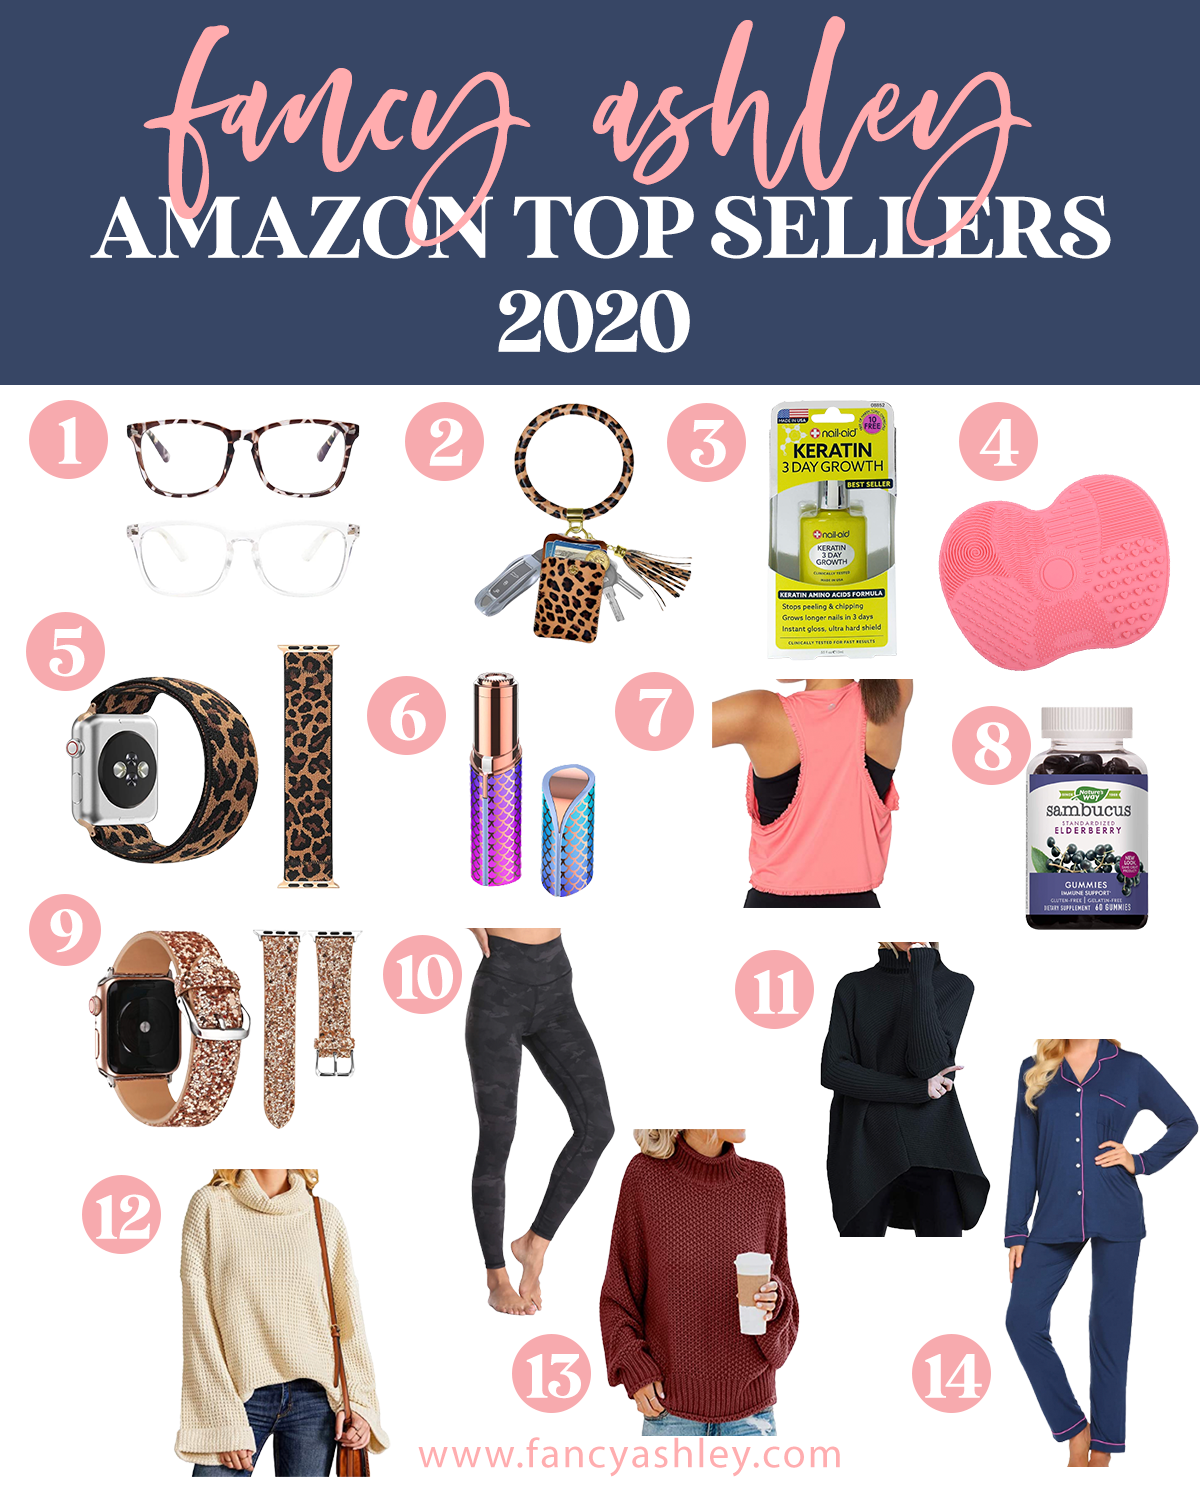 Top Amazon Products by popular Houston life and style blog, Fancy Ashely: collage image of Amazon blue light glasses, leopard print key ring, silicone brush cleaning pad, leopard print apple watch band, racer back workout tank, gold glitter smart watch band, black leggings, black turtleneck tunic sweater, tan bell sleeve knit sweater, blue pajama set, maroon long sleeve turtleneck sweater, Nail-Aid Keratin 3 day growth, Sambucus elderberry gummies, and a mermaid FINISHING TOUCH Flawless Women's Painless Hair Remover.